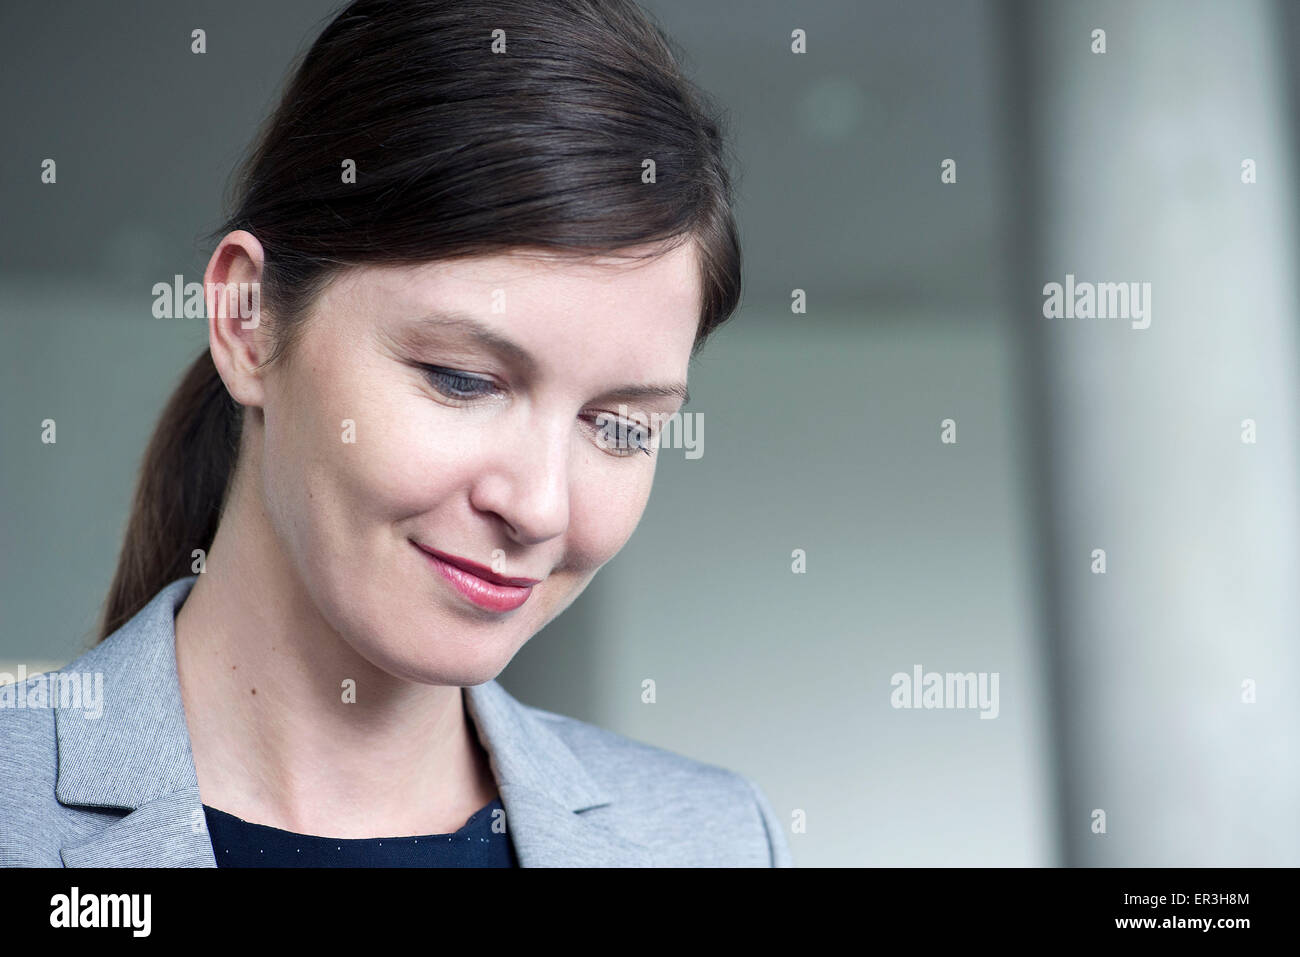 Businesswoman looking down in thought, smiling - Stock Image